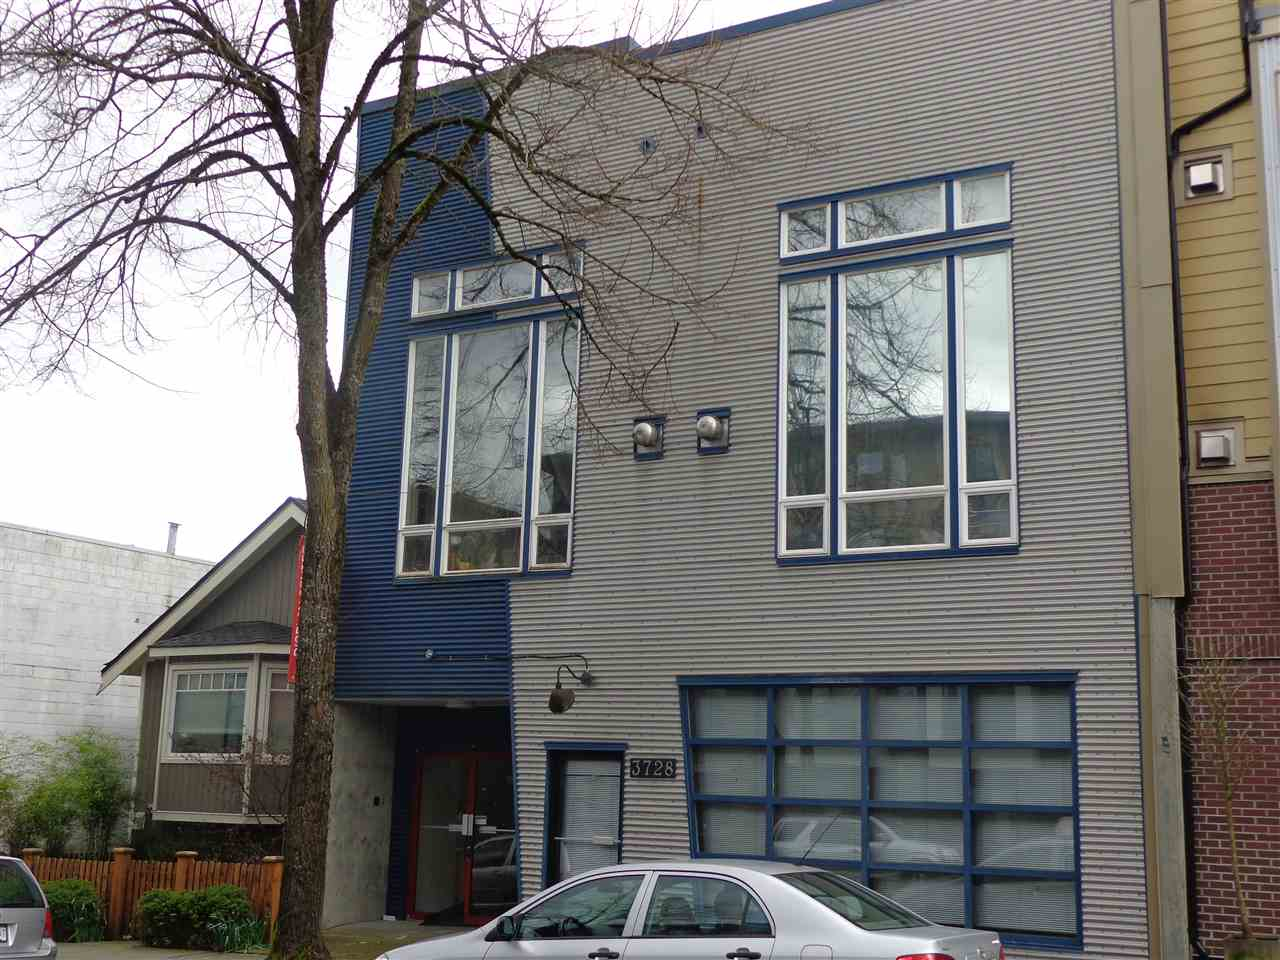 Photo 2: 1 3726 COMMERCIAL STREET in Vancouver: Victoria VE Condo for sale (Vancouver East)  : MLS(r) # R2037382